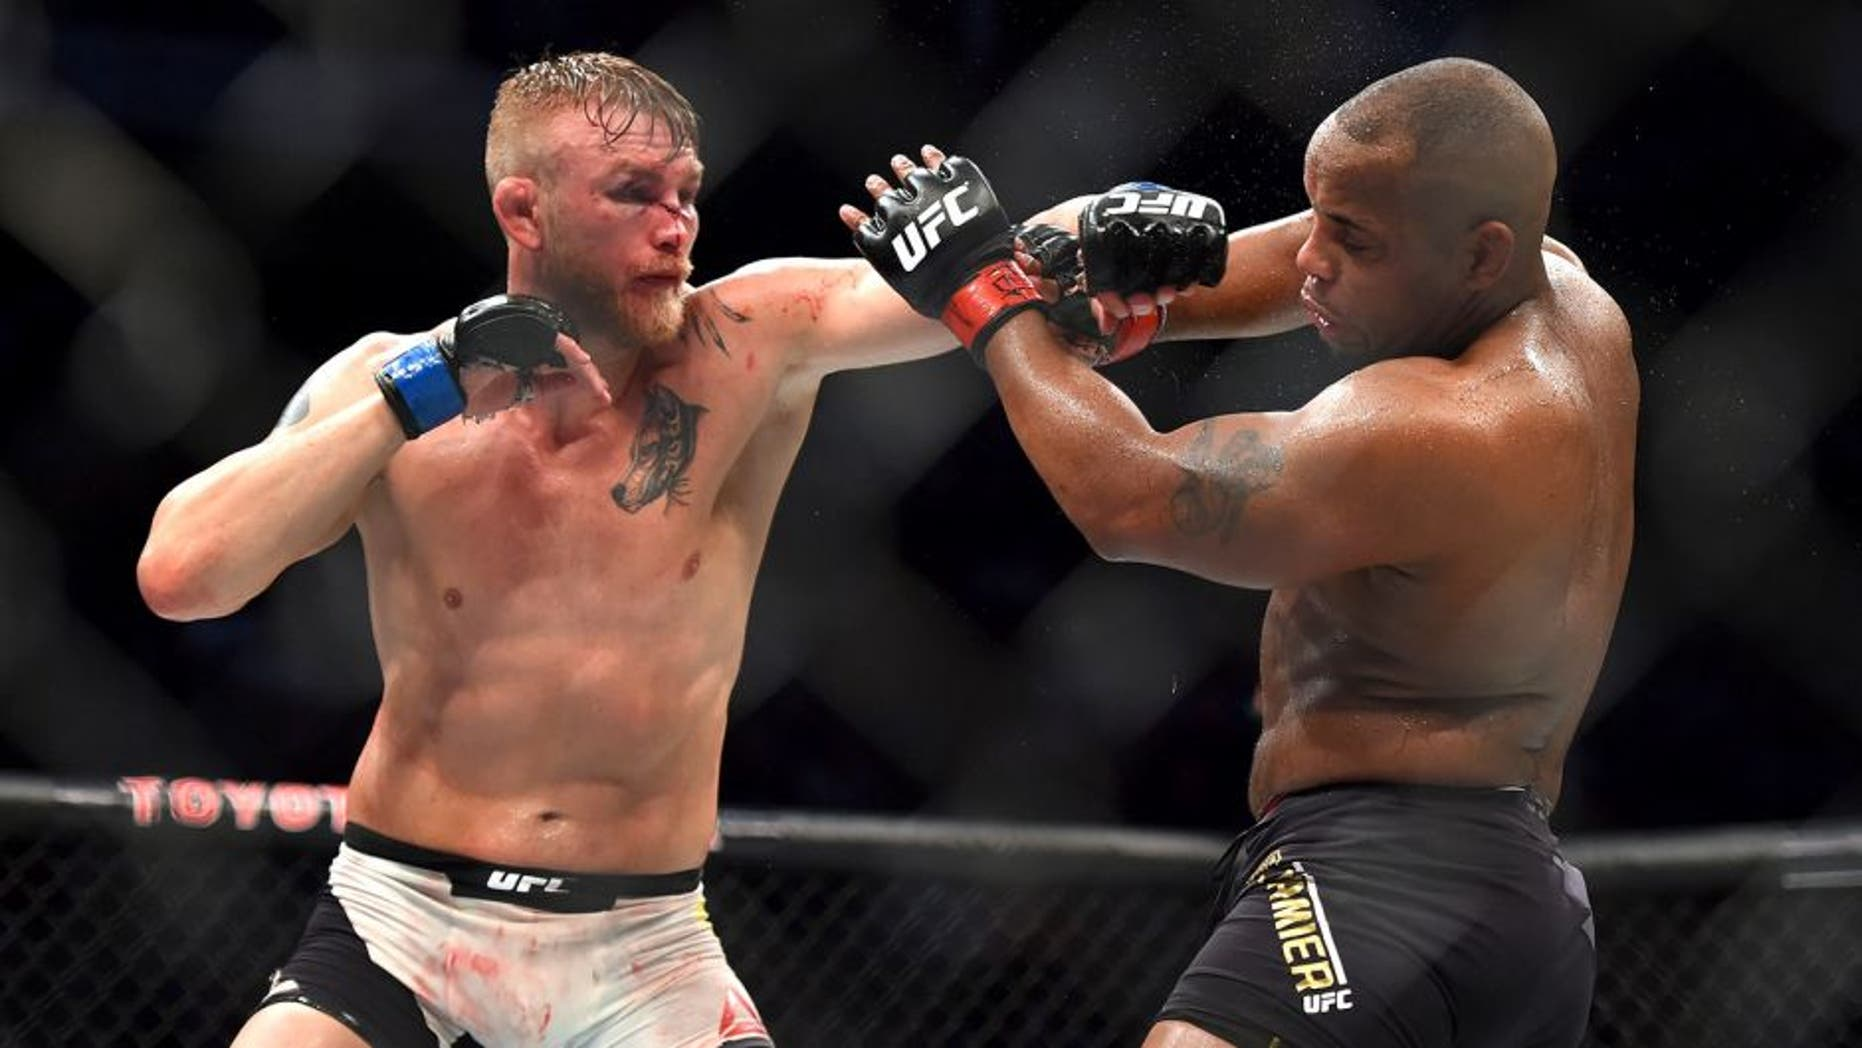 HOUSTON, TX - OCTOBER 03: (L-R) Alexander Gustafsson punches Daniel Cormier in their UFC light heavyweight championship bout during the UFC 192 event at the Toyota Center on October 3, 2015 in Houston, Texas. (Photo by Jeff Bottari/Zuffa LLC/Zuffa LLC via Getty Images)